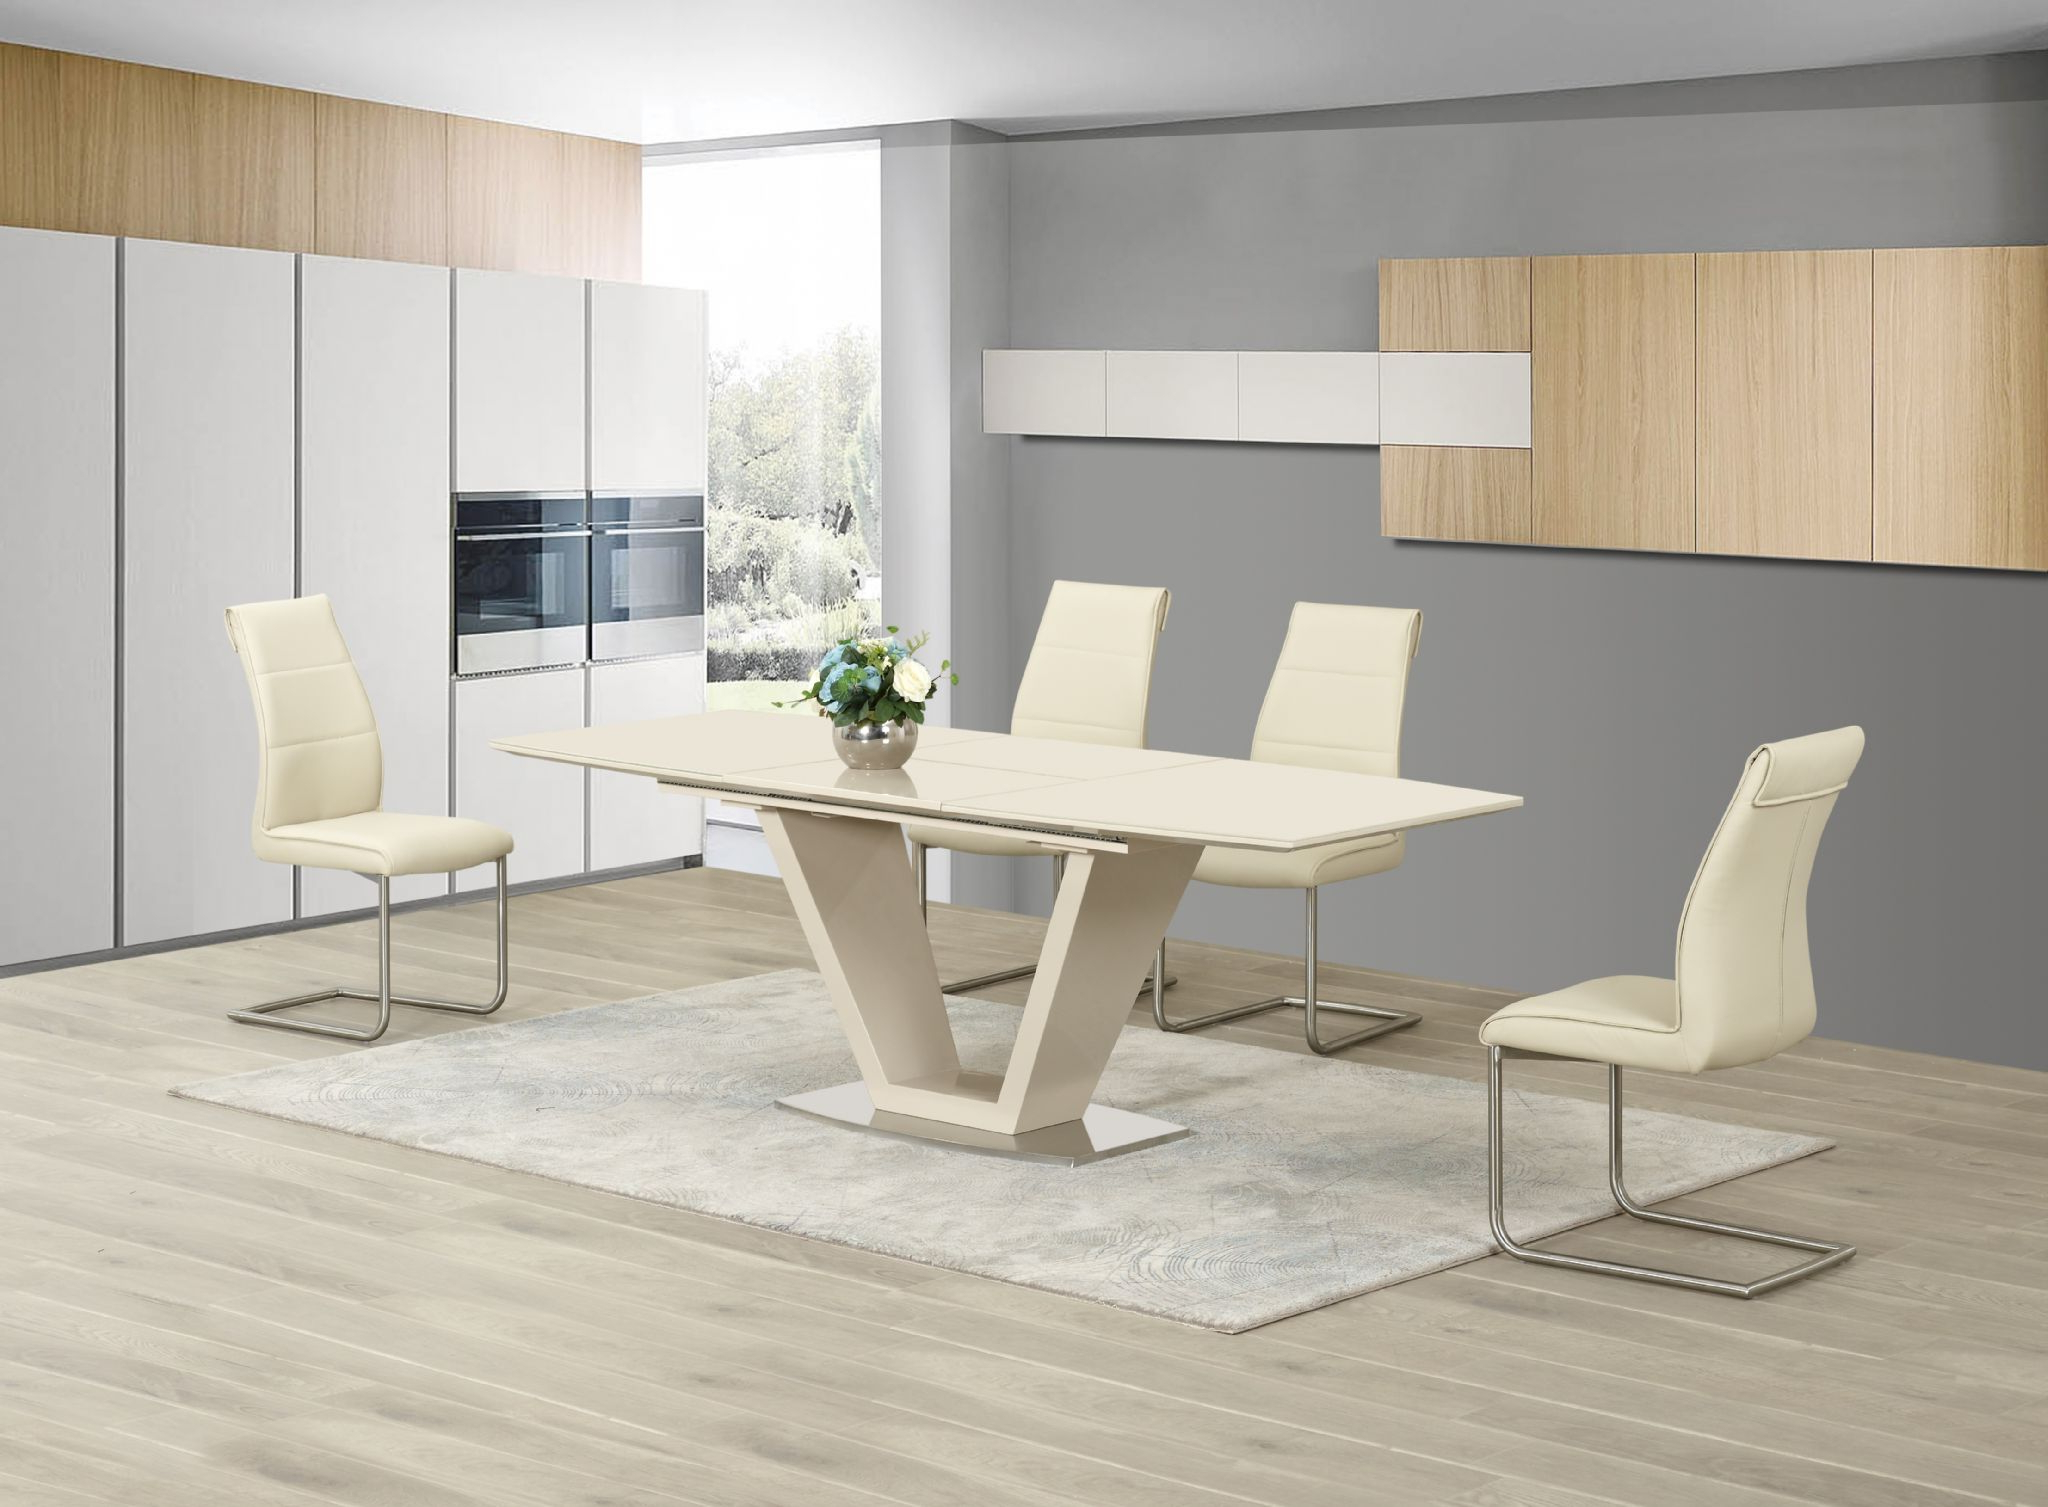 8 Seater Wood Contemporary Dining Tables With Extension Leaf With Regard To 2018 Floris Cream Extending Dining Table High Gloss (View 20 of 30)